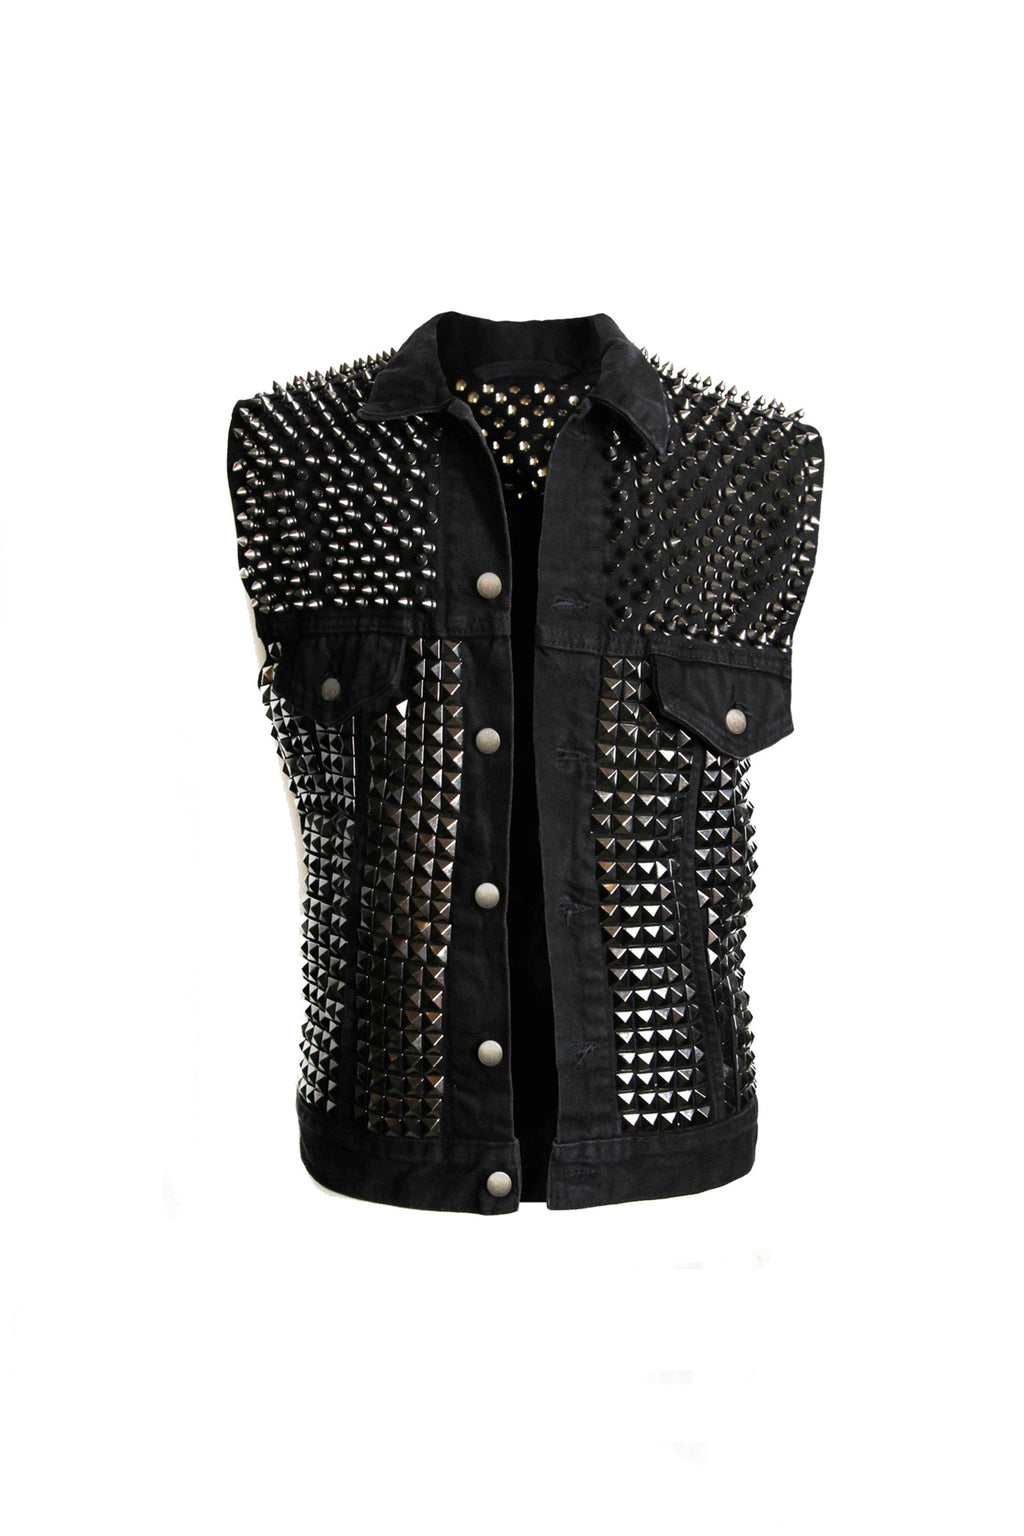 762MM Full Metal Vest